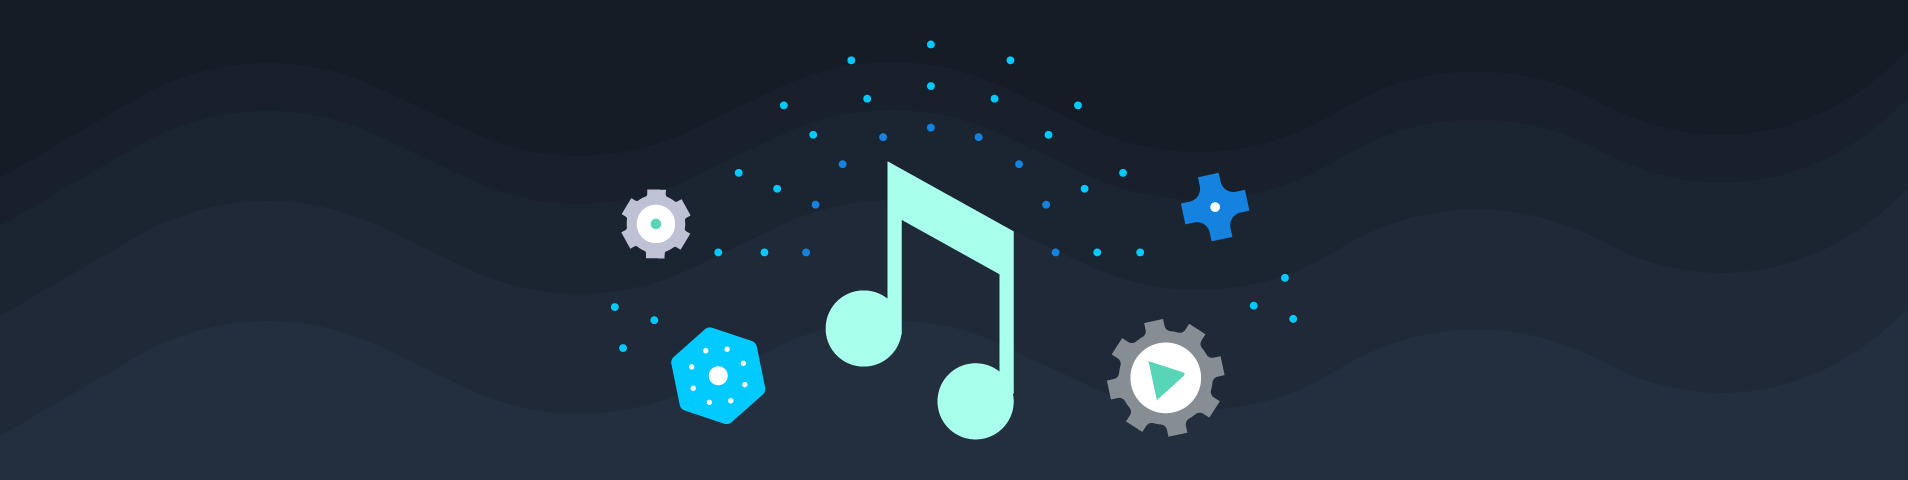 Coming Soon: Use the ASK Music Skill API to Stream Music